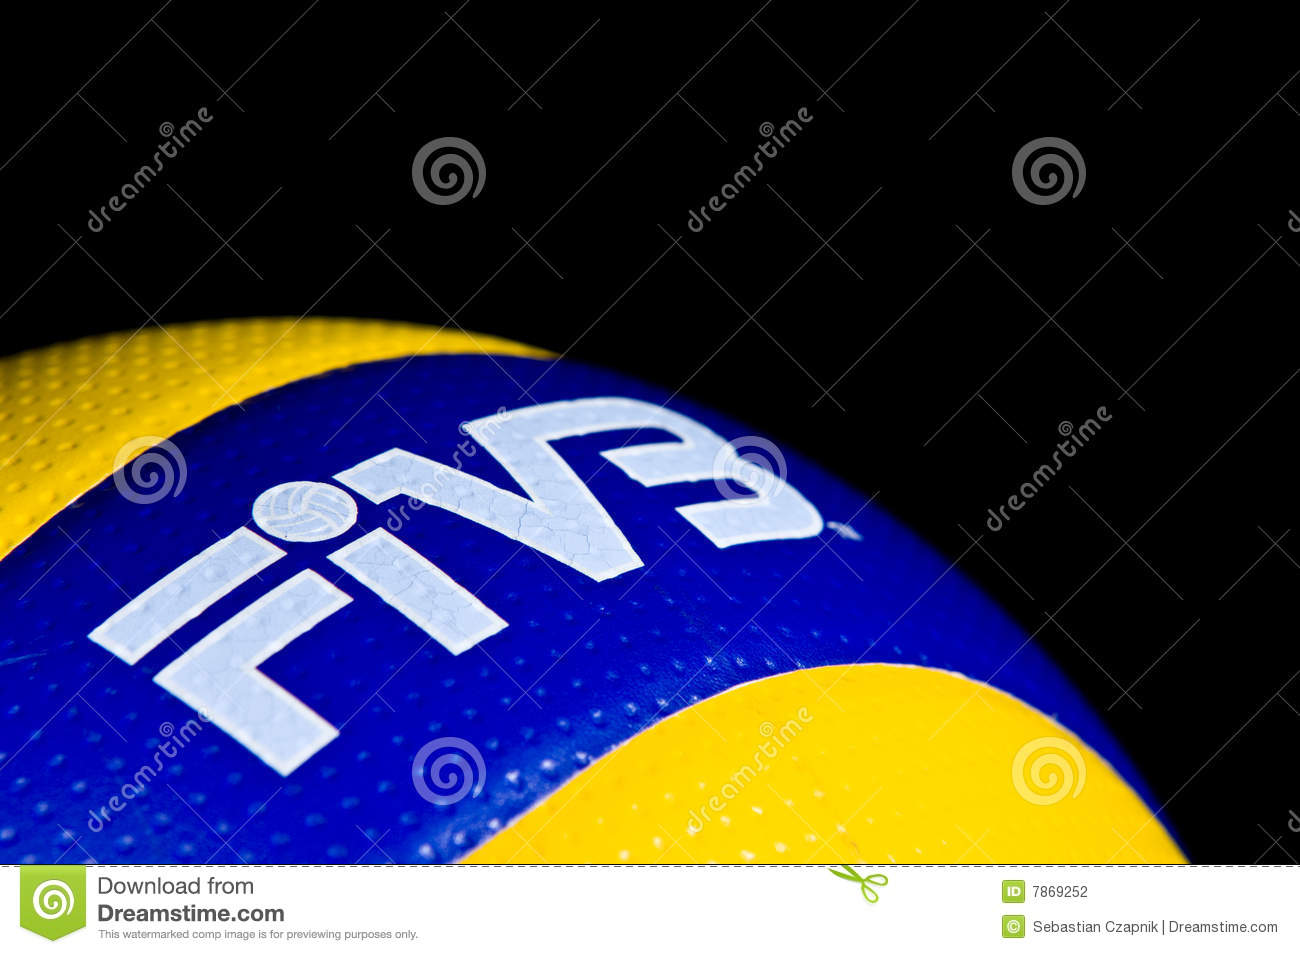 swatch fivb 1024x768 wallpapers - photo #34